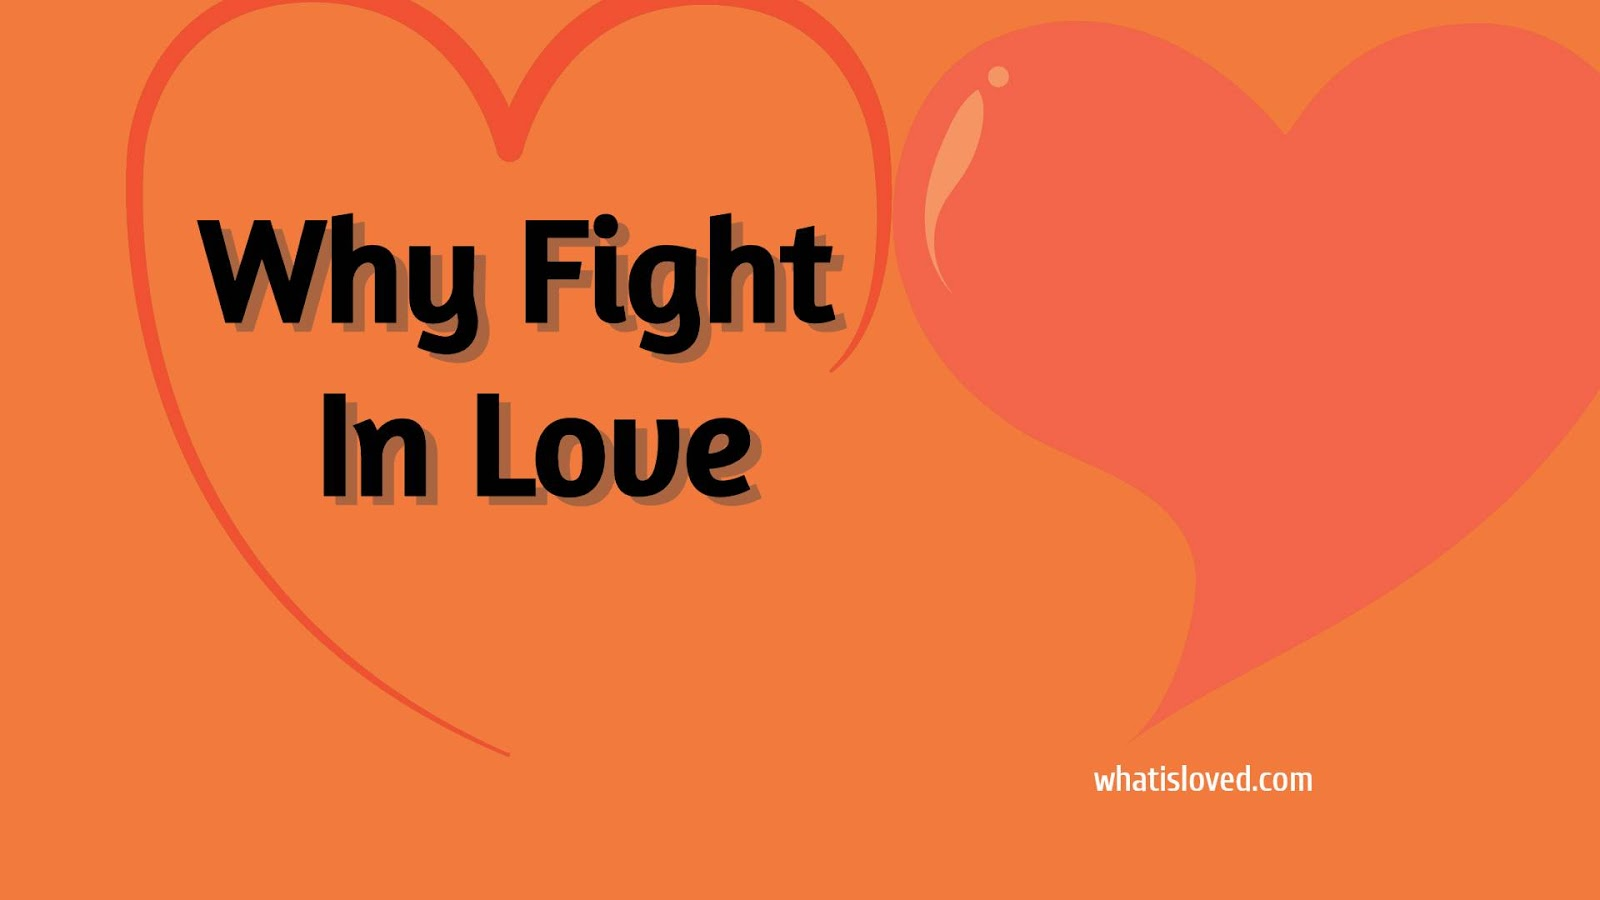 Fight in Love:-There can be many reasons for fighting in love. Those love fight may be settled, but if they continue, fight may break out.